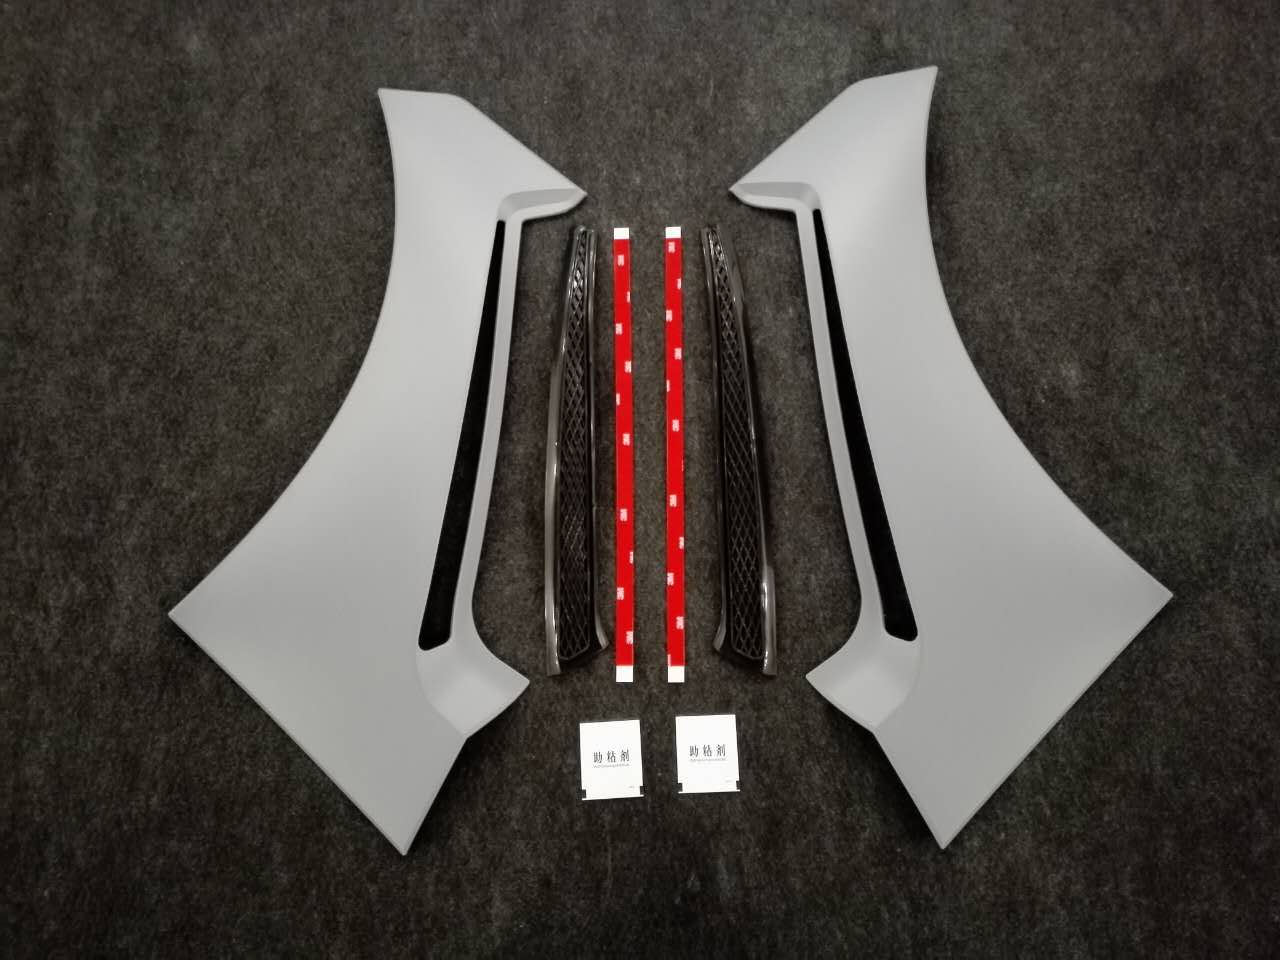 2015-17 Mustang Front Fender Scoop Vents Type GT350 - (ALL MODELS) PAIR - Polyurethane